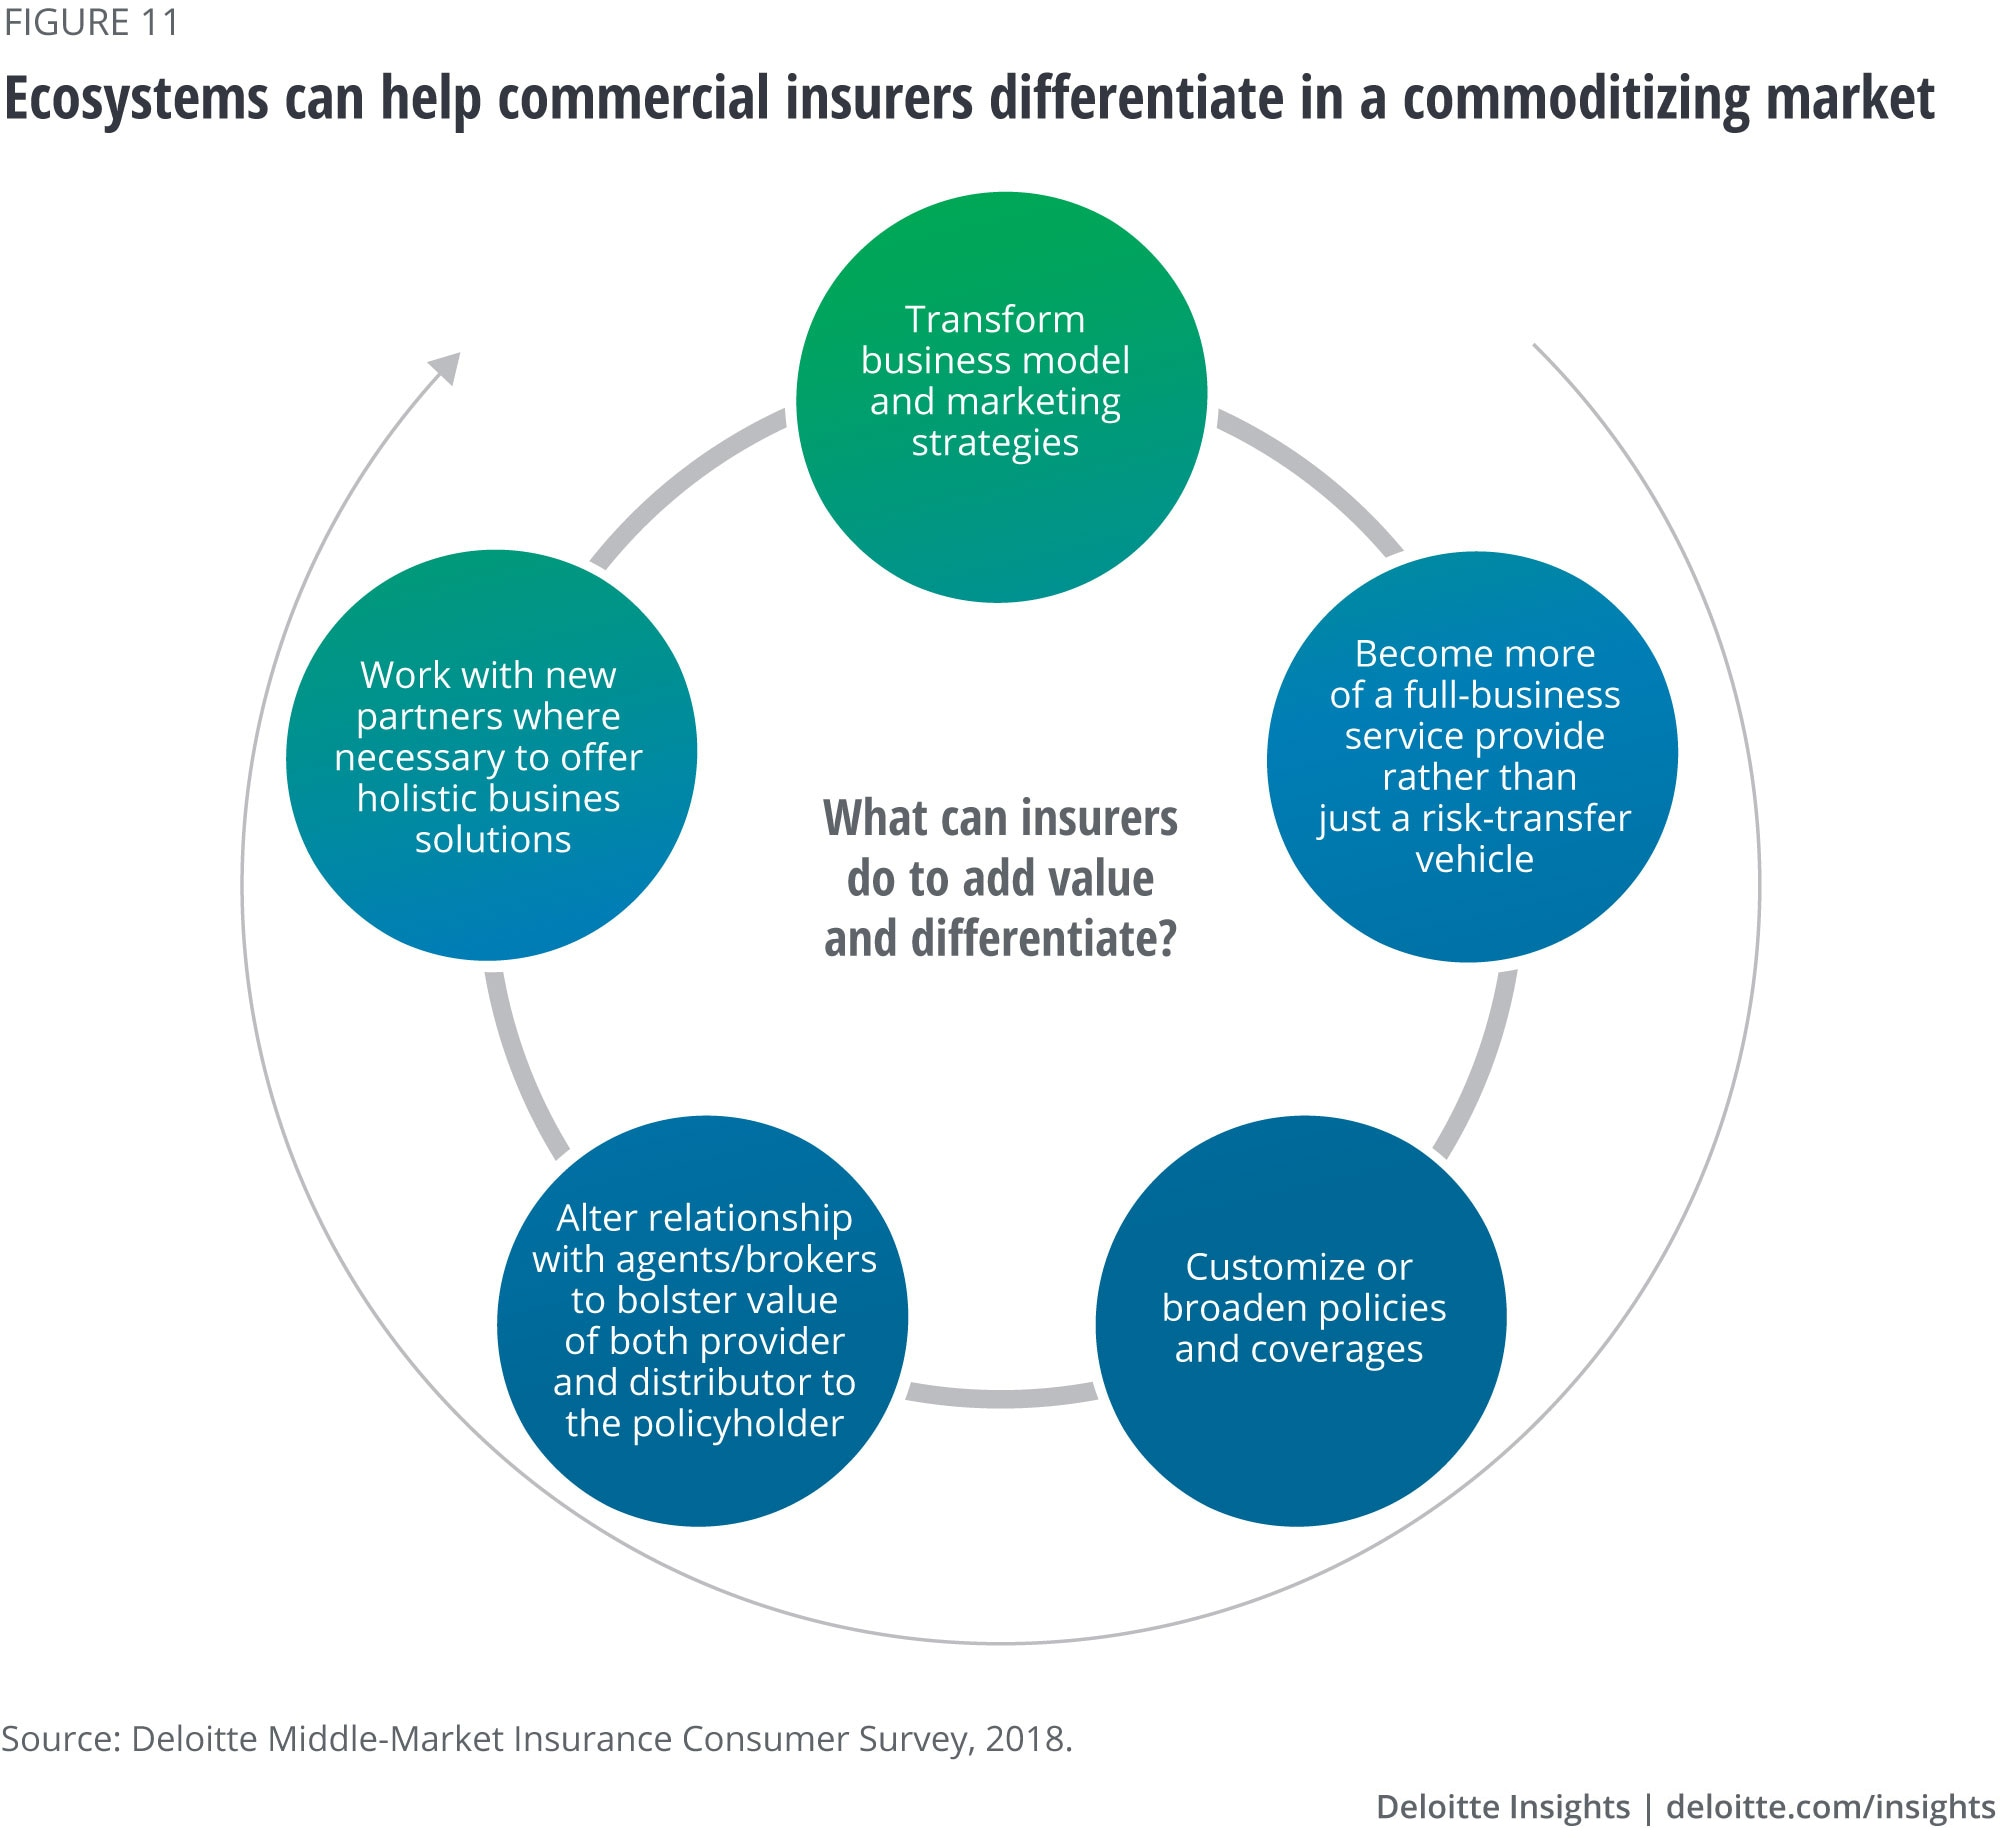 Ecosystems can help commercial insurers differentiate in a commoditizing market